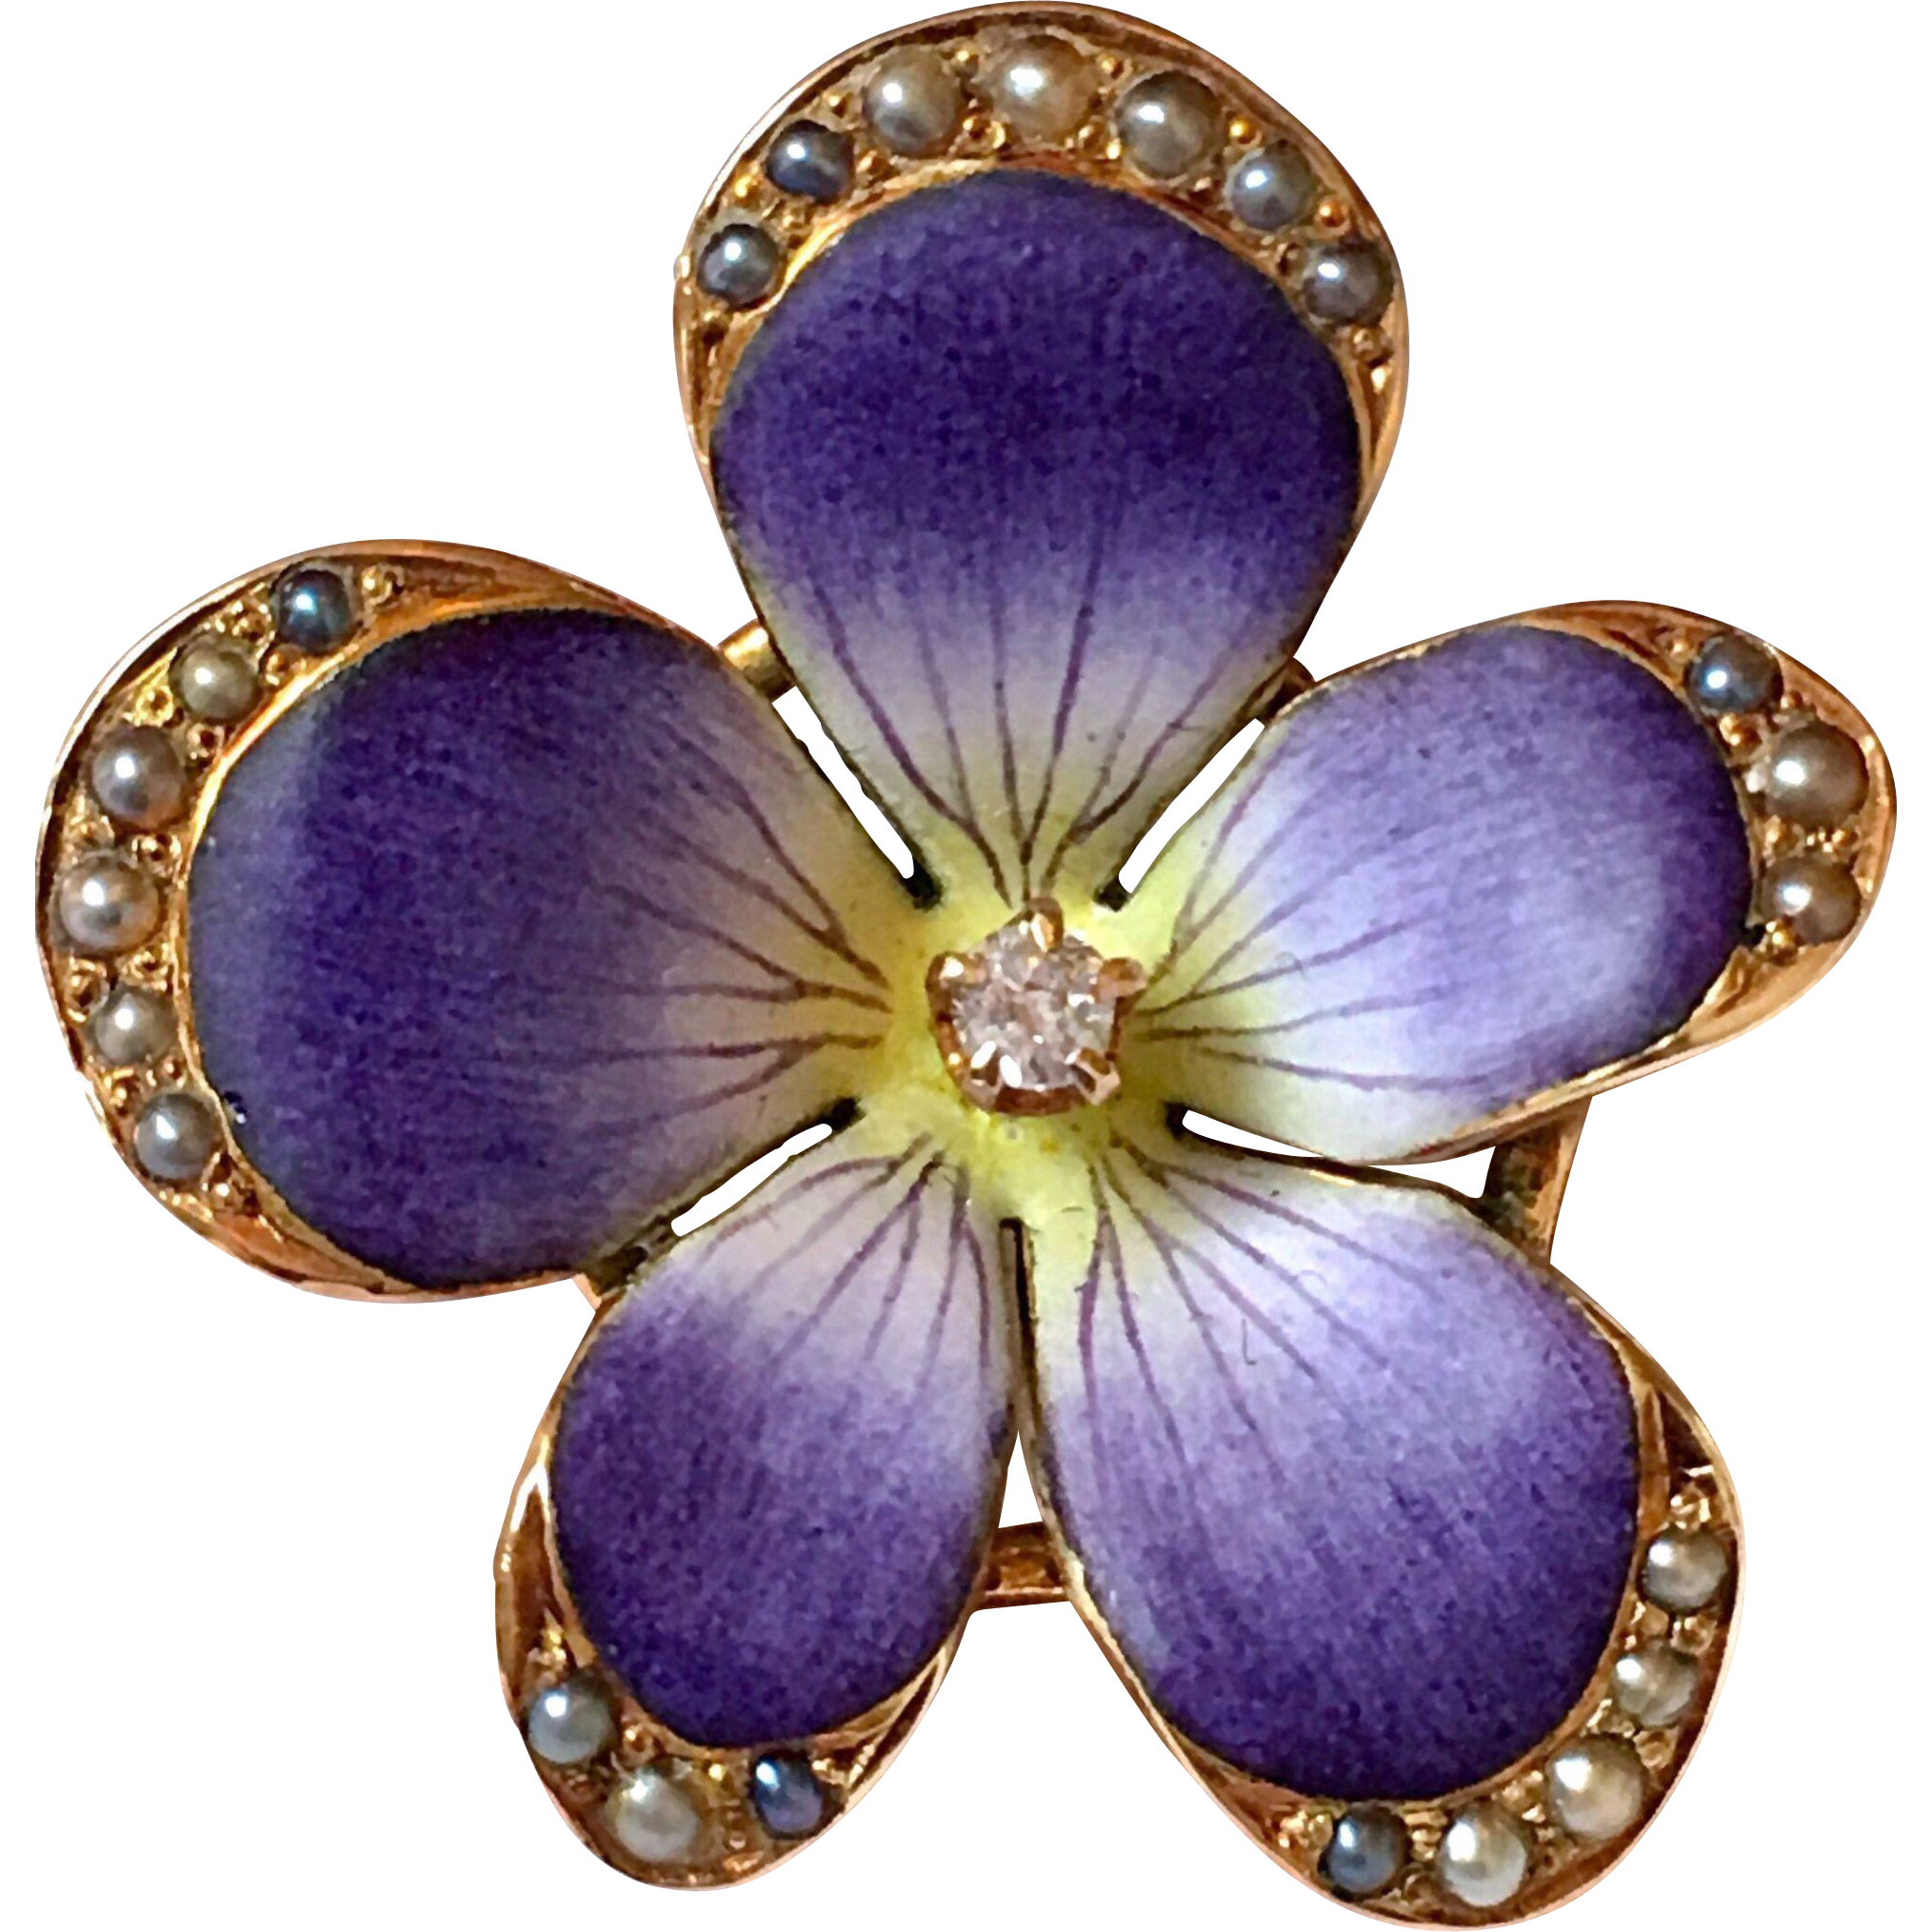 violet marie brooch a diamonds and poutine purple s pin white from enamel with circa